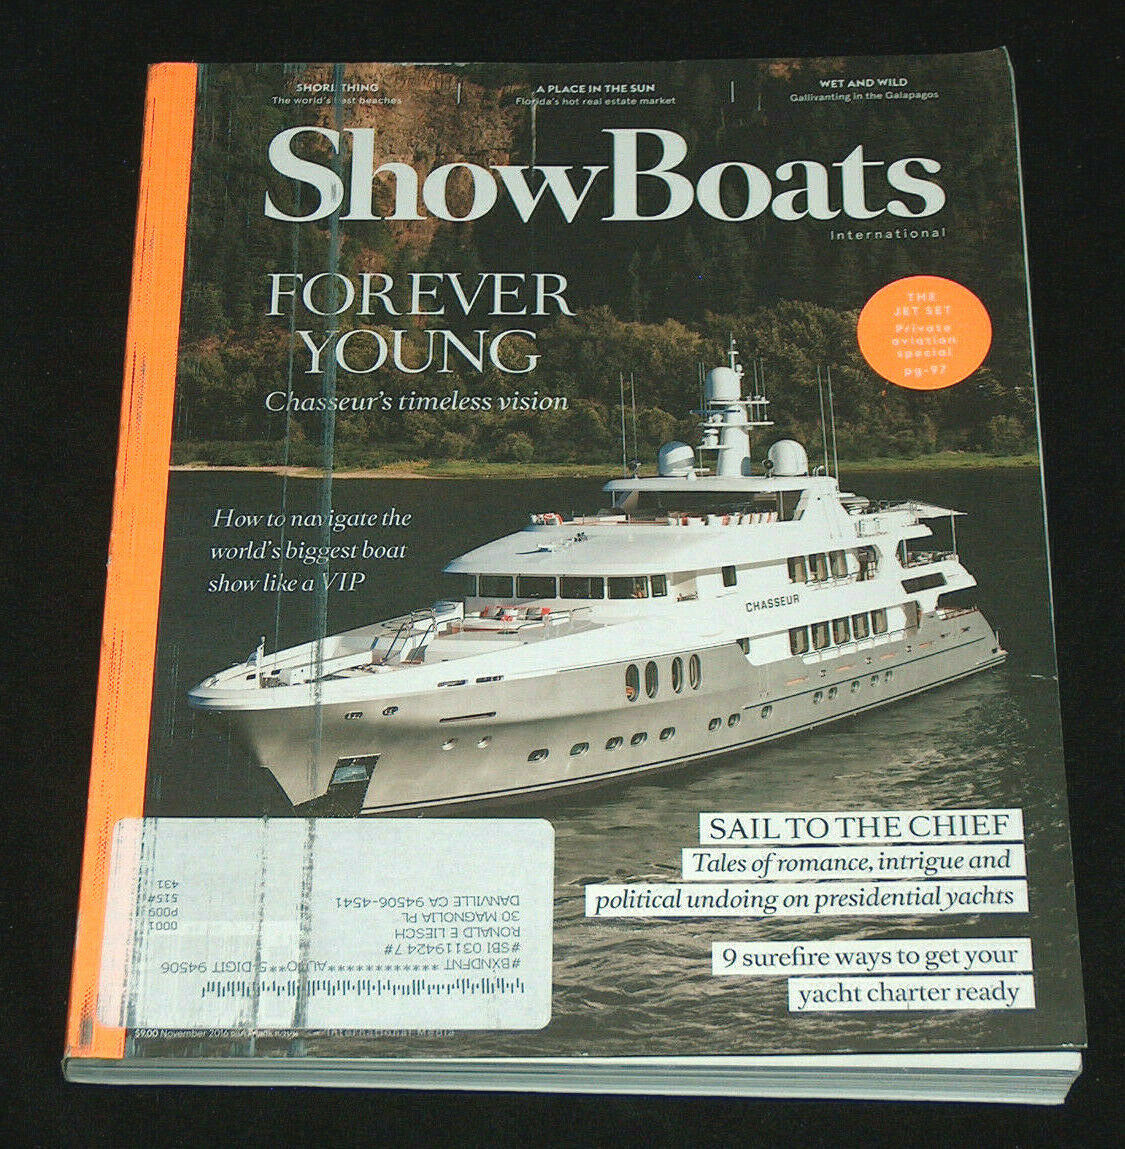 Primary image for Showboats International Novembre 2016 Chasseur's senza Tempo Vision Yacht Barche